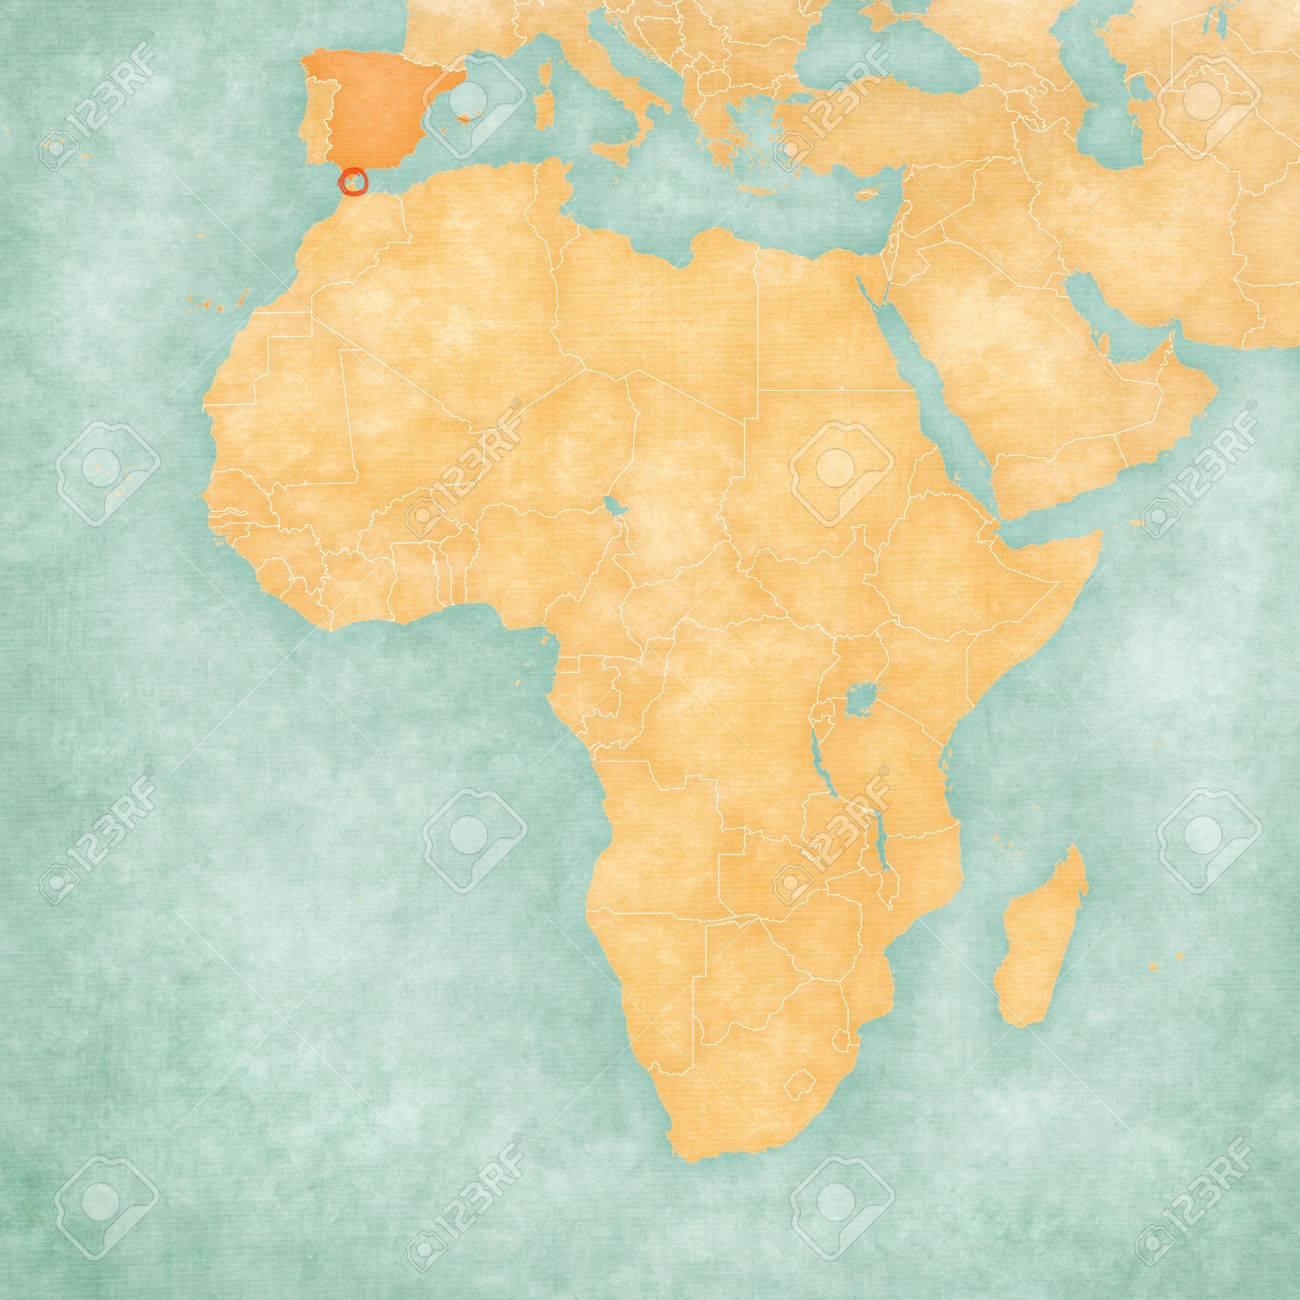 Spain And Africa Map.Ceuta Spain On The Map Of Africa The Map Is In Soft Grunge